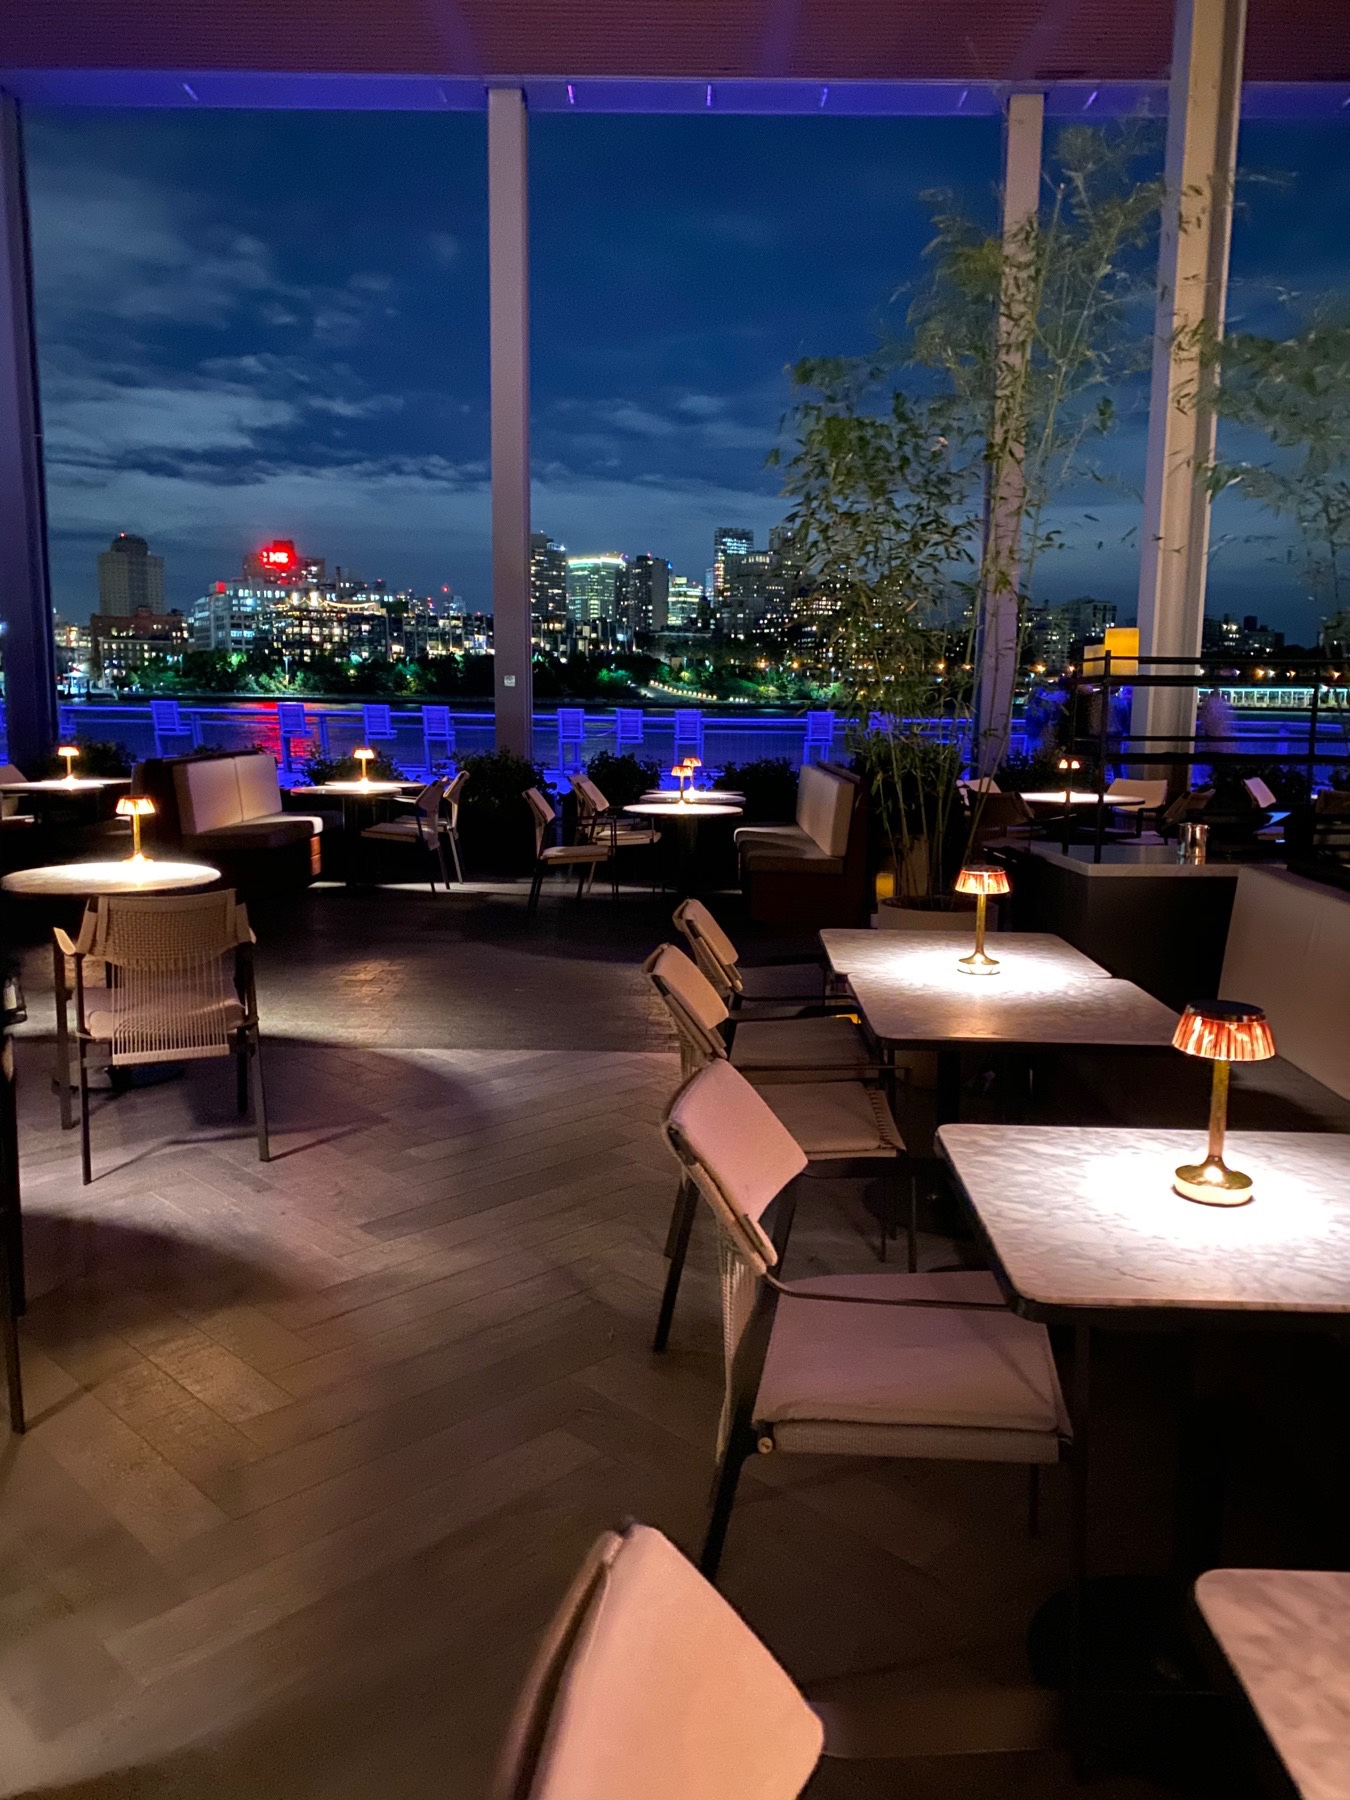 the fulton, south street seaport restaurants, best nyc restaurant, nyc restaurant with a view, waterfront dining nyc, jean georges